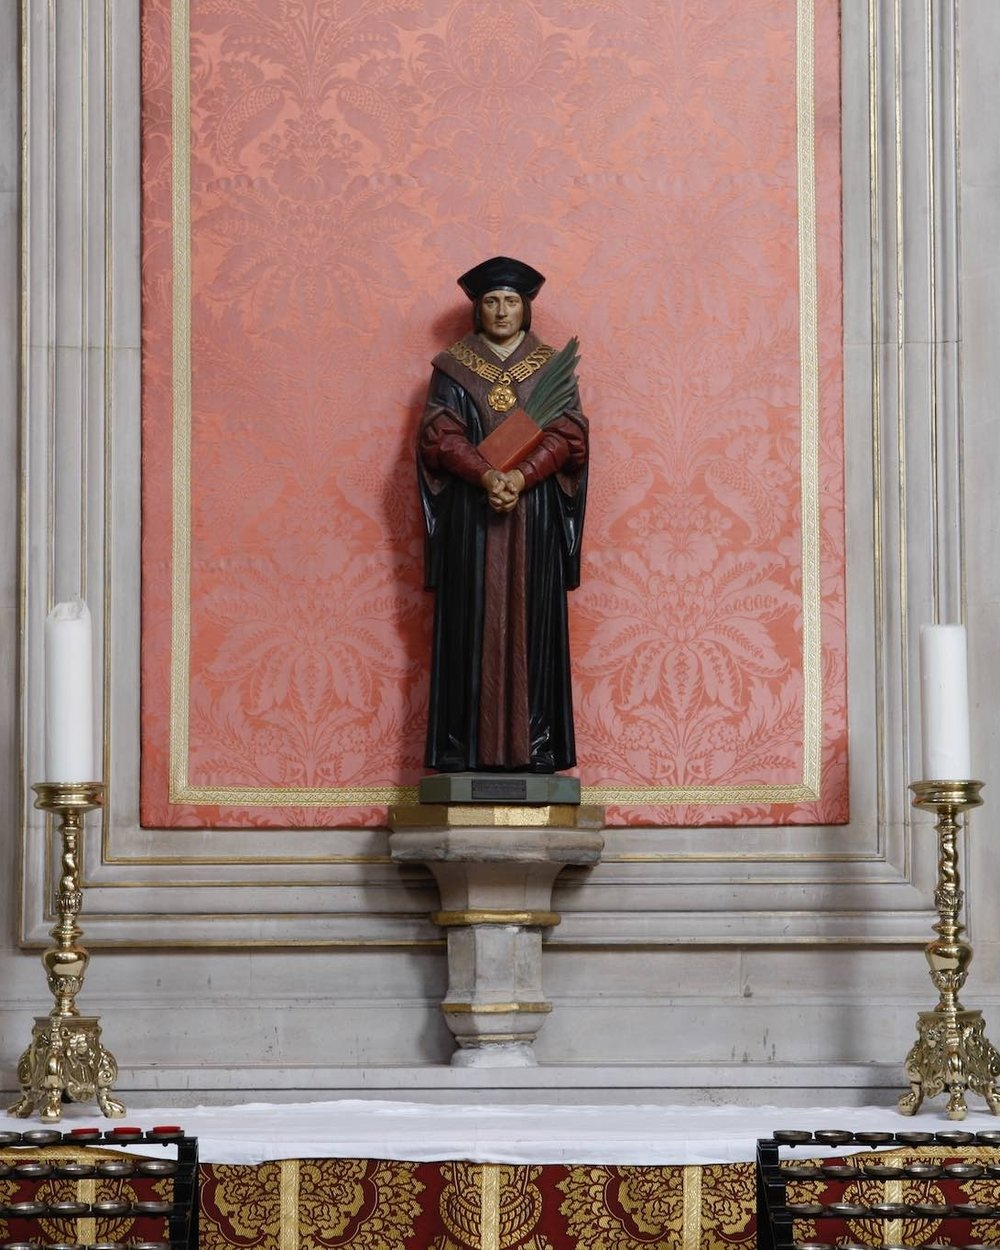 St. Thomas More altar - This altar was commissioned by the then parish priest, Father Philip Valentin, to commemorate St. Thomas More's canonisation, with St. John Fisher, by Pope Pius XI in 1935, 400 years after their martyrdom.  A reliquary containing a first class relic of St. Thomas, acquired from the Belgian convent entered by More's step-daughter, Alice Alington, used to stand on this altar, but it was stolen in the 1960s.  The feast day of St. John Fisher and St. Thomas More is June 22nd.  Pope John Paul II declared St. Thomas More the patron saint of statesmen and politicians on October 31st, 2000.